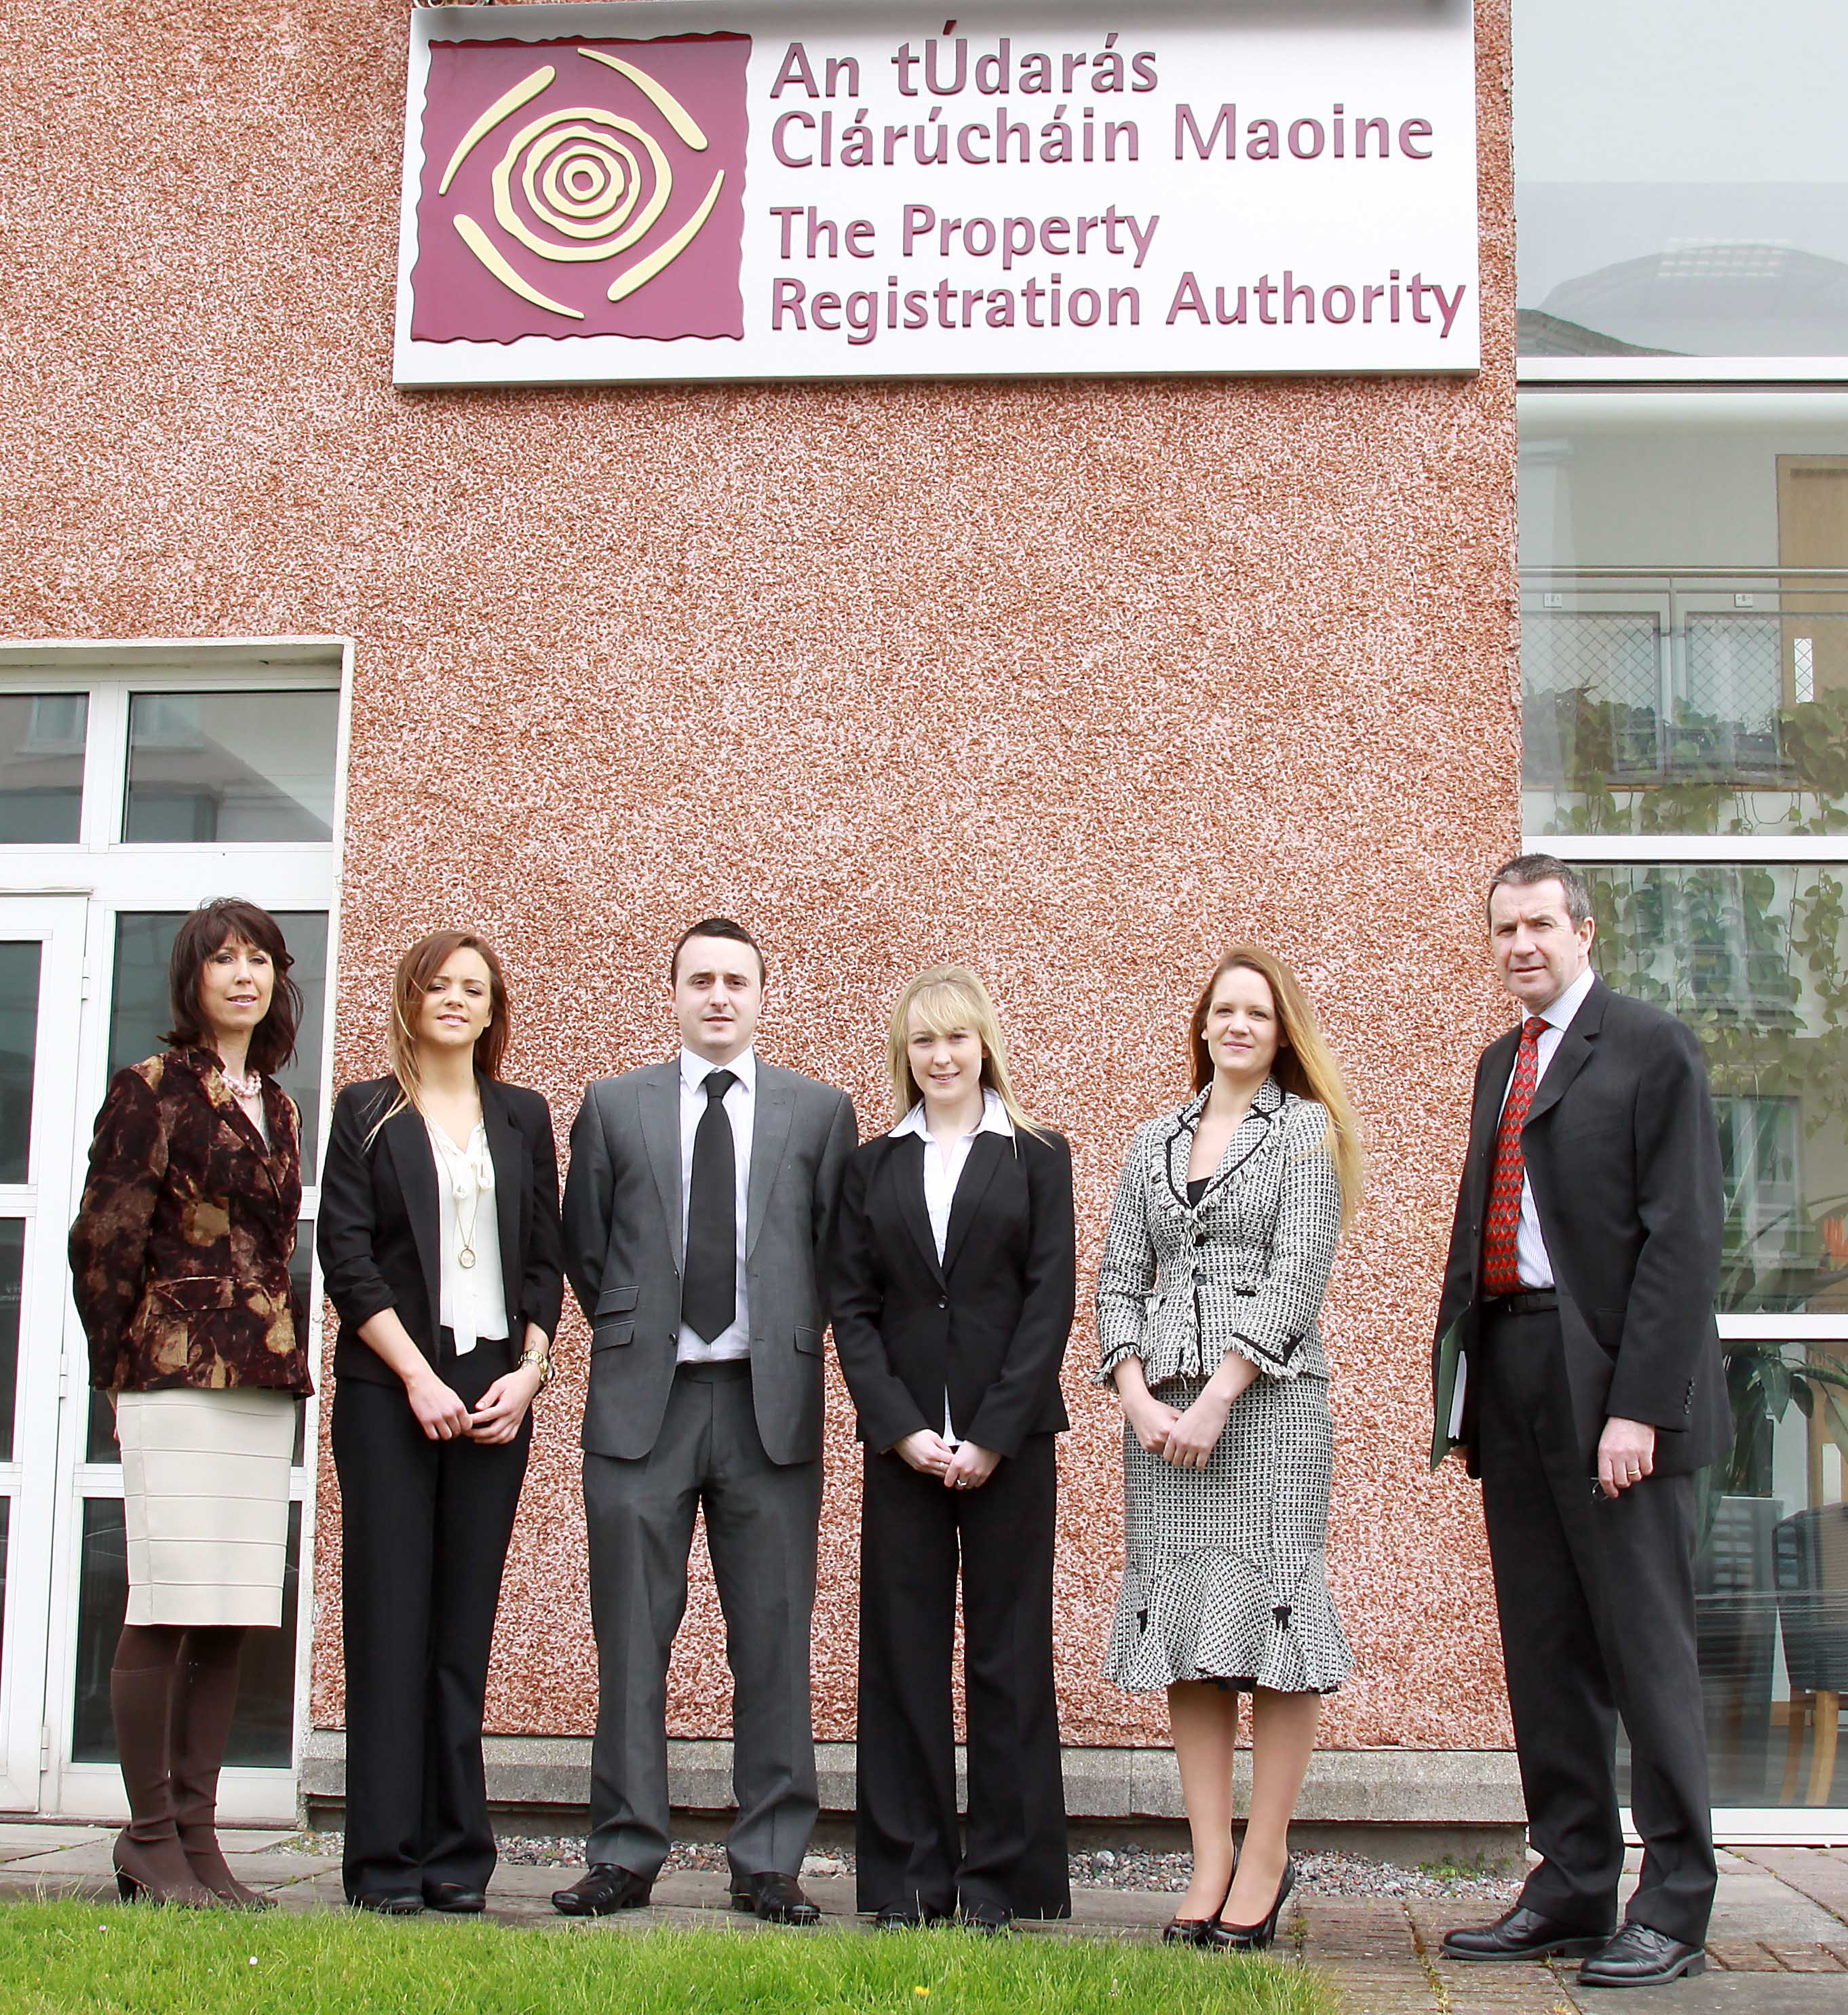 From L to R: Carmel Brennan, Lecturer, Sinead Hogan, Adam Duggan, Tanya Kavanagh, Deirdre Walsh (Students) and John O'Carroll, Higher Executive Officer PRA